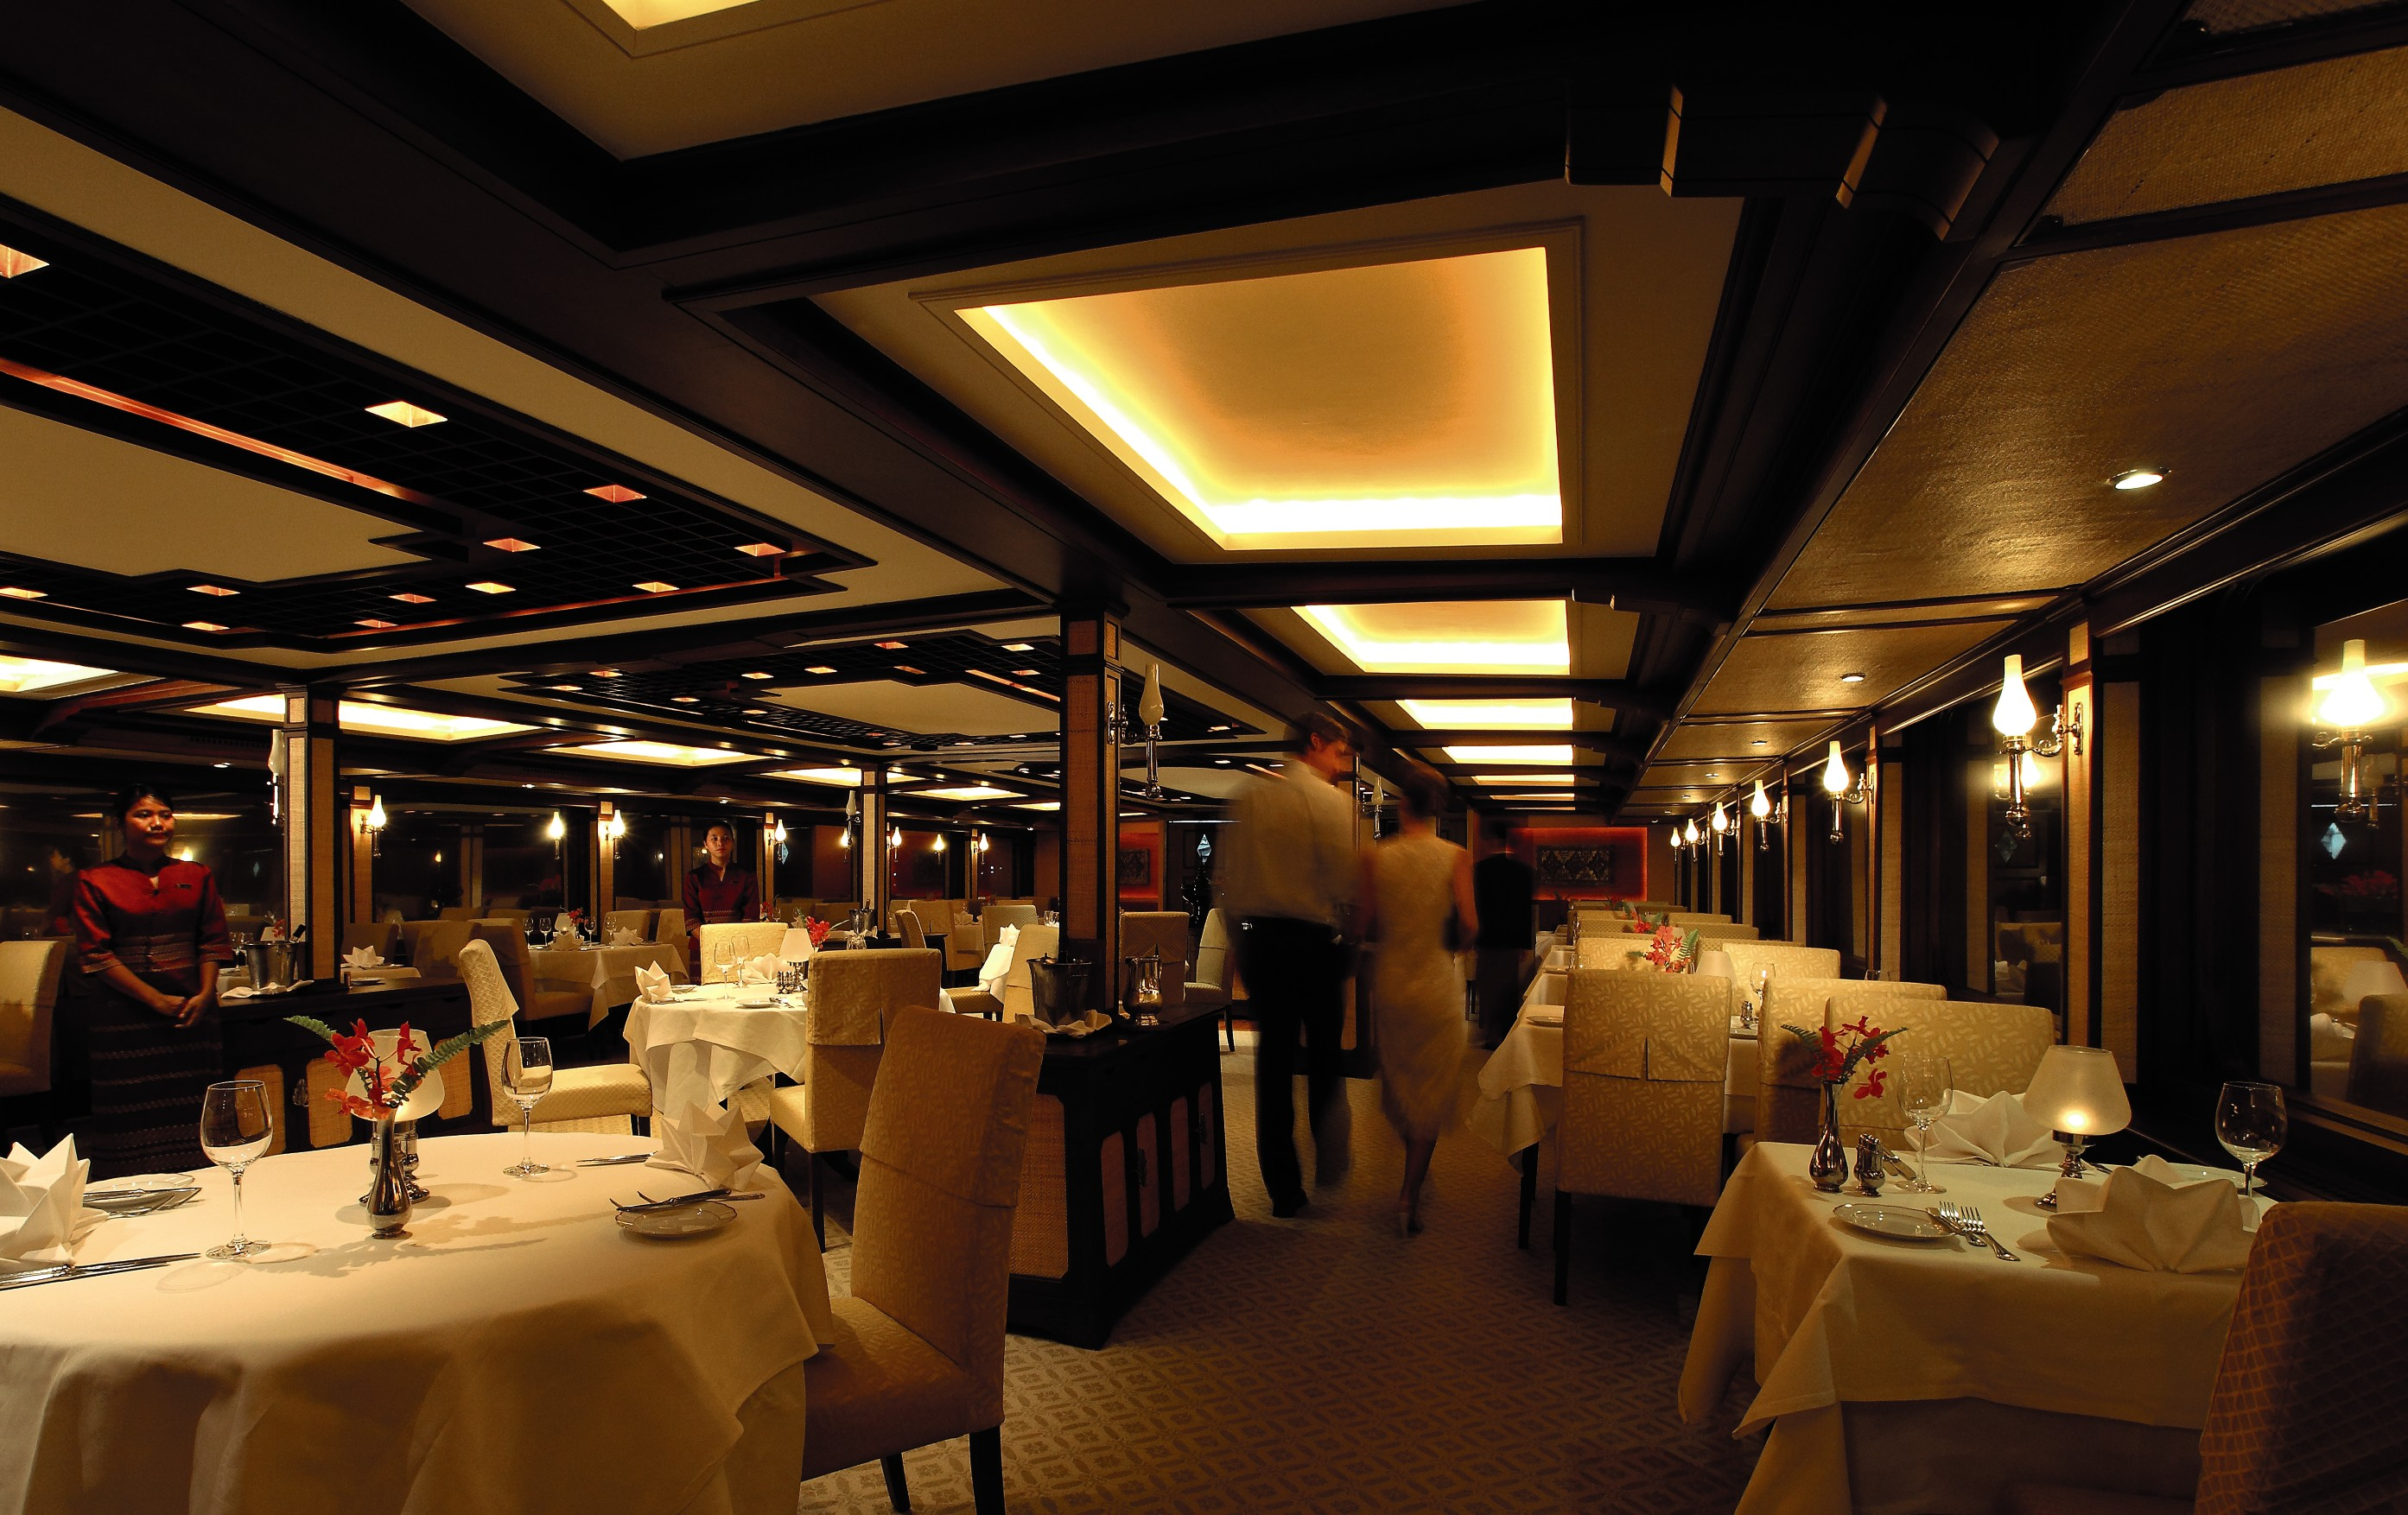 Belmond River Cruises Road to Mandalay Interior Restaurant Diner 05.jpg